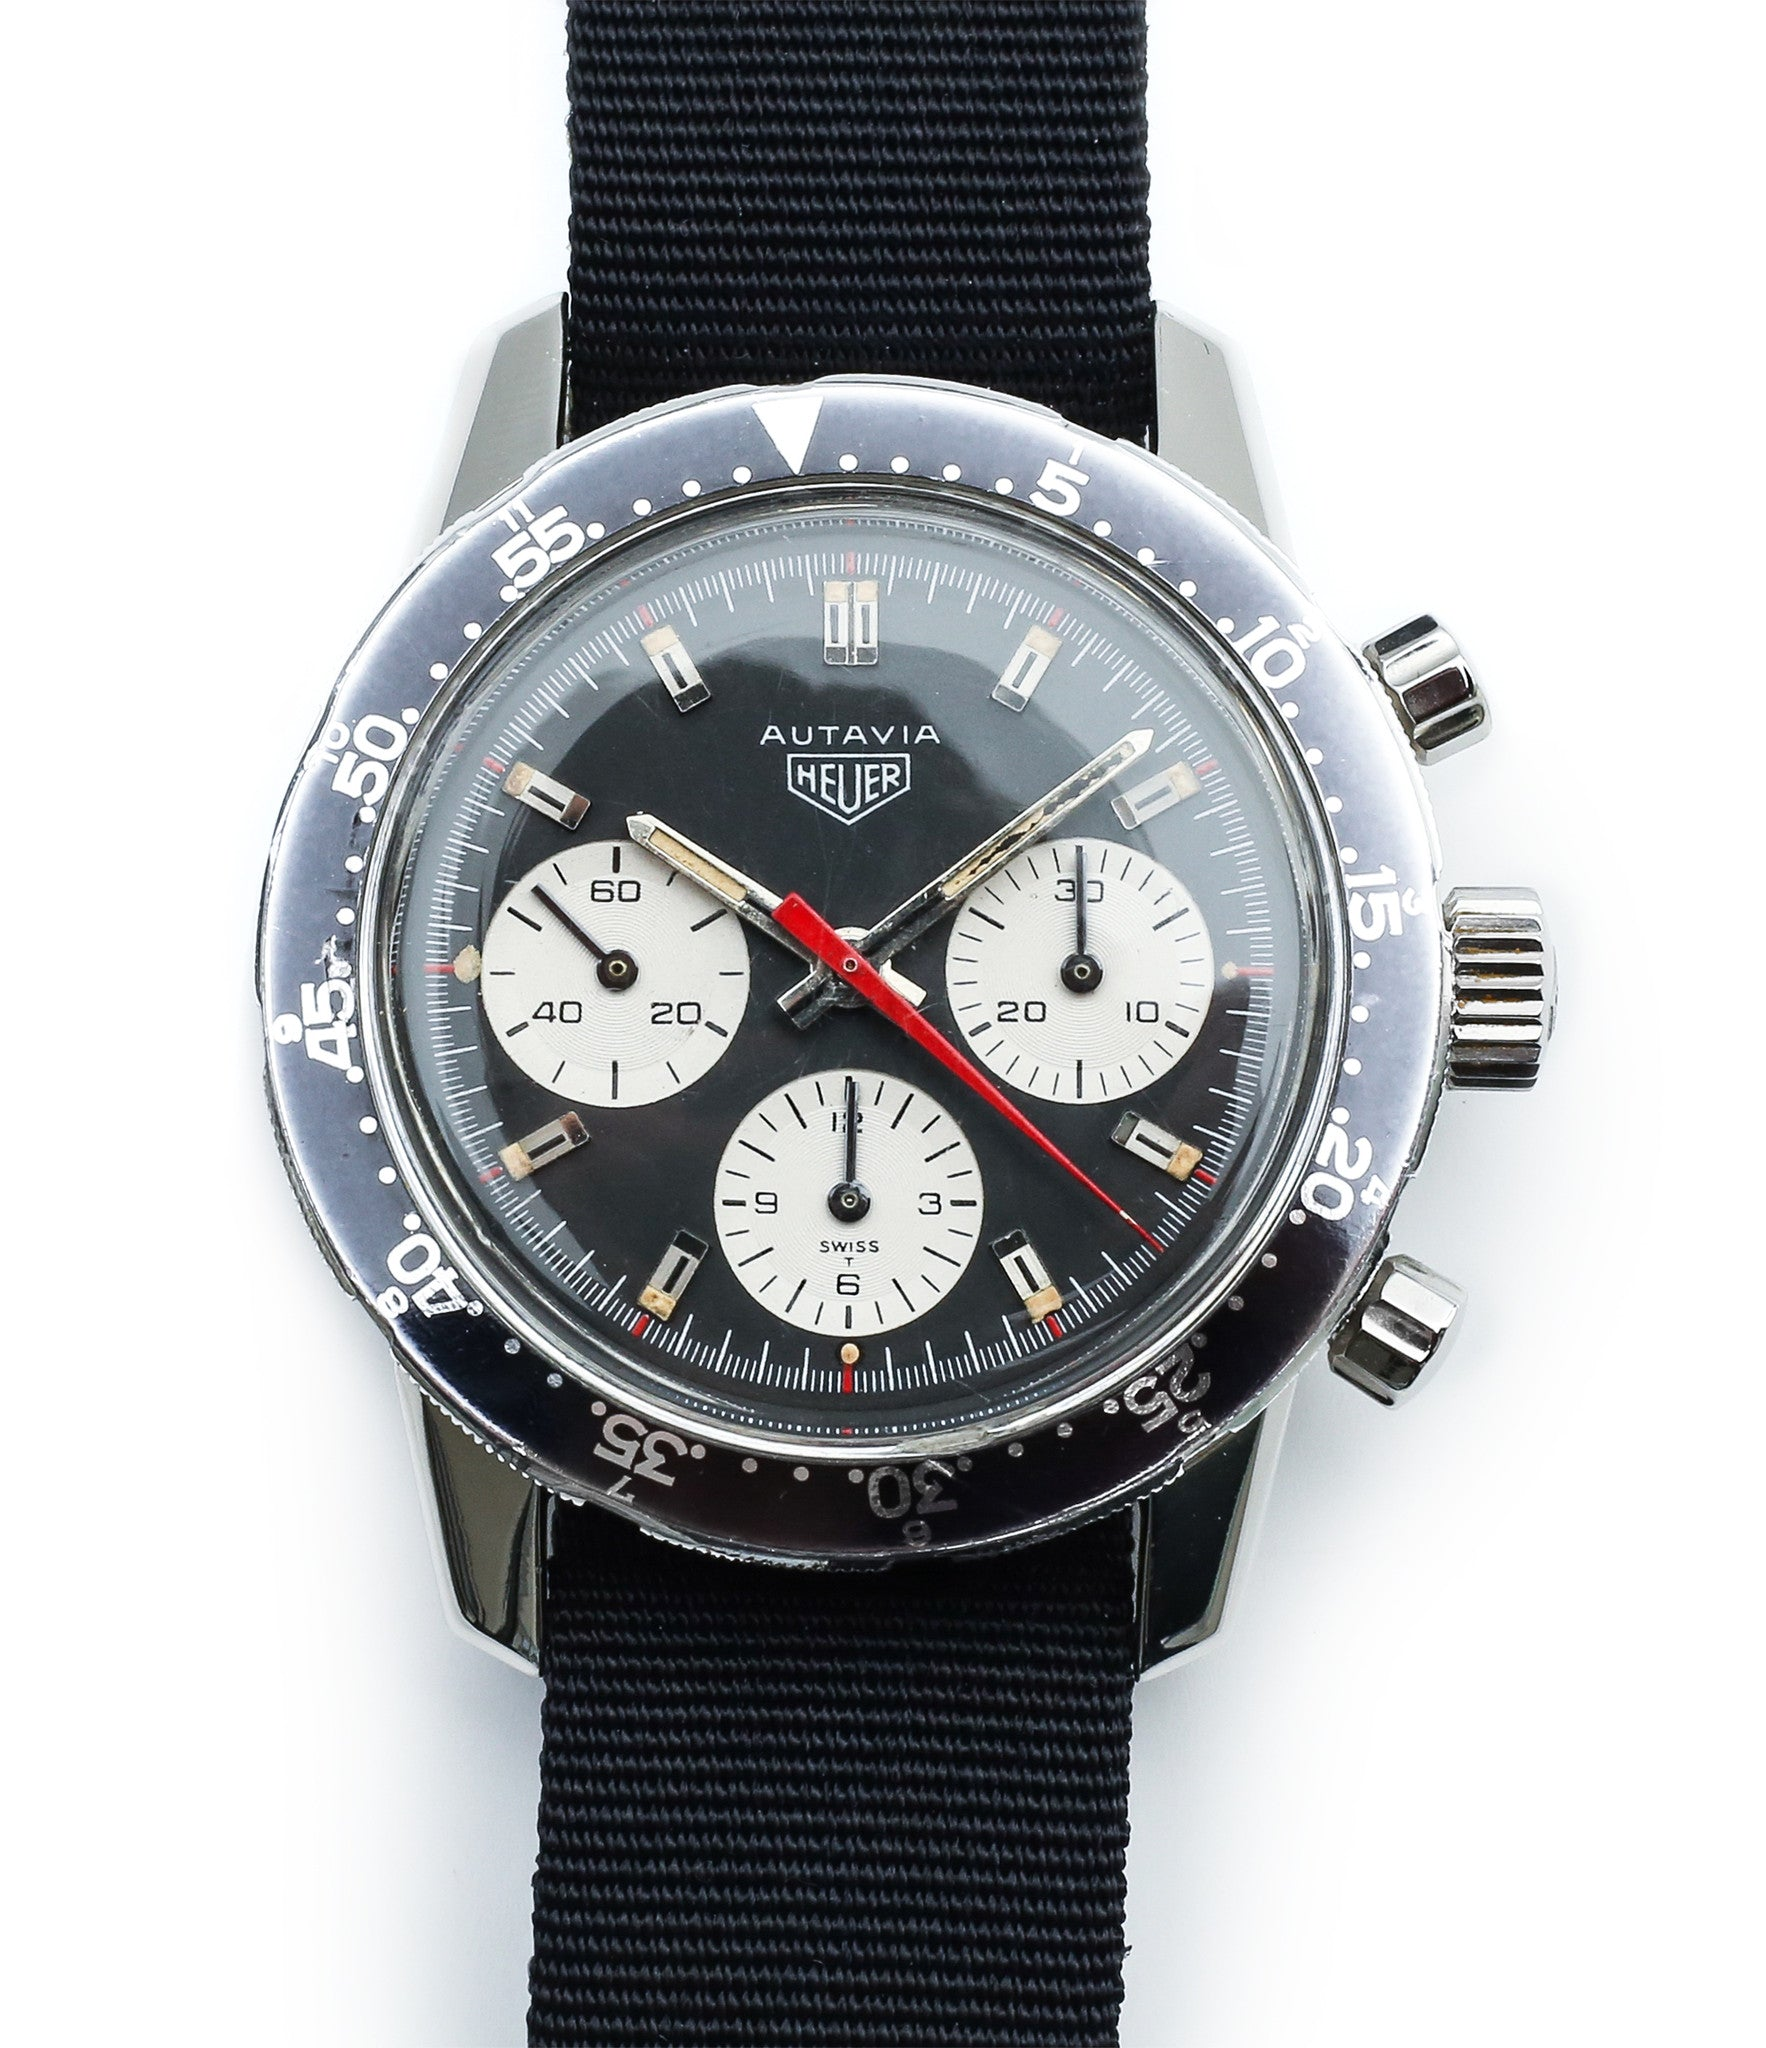 steel vintage chronograph Heuer watch 2446C red hand for sale online